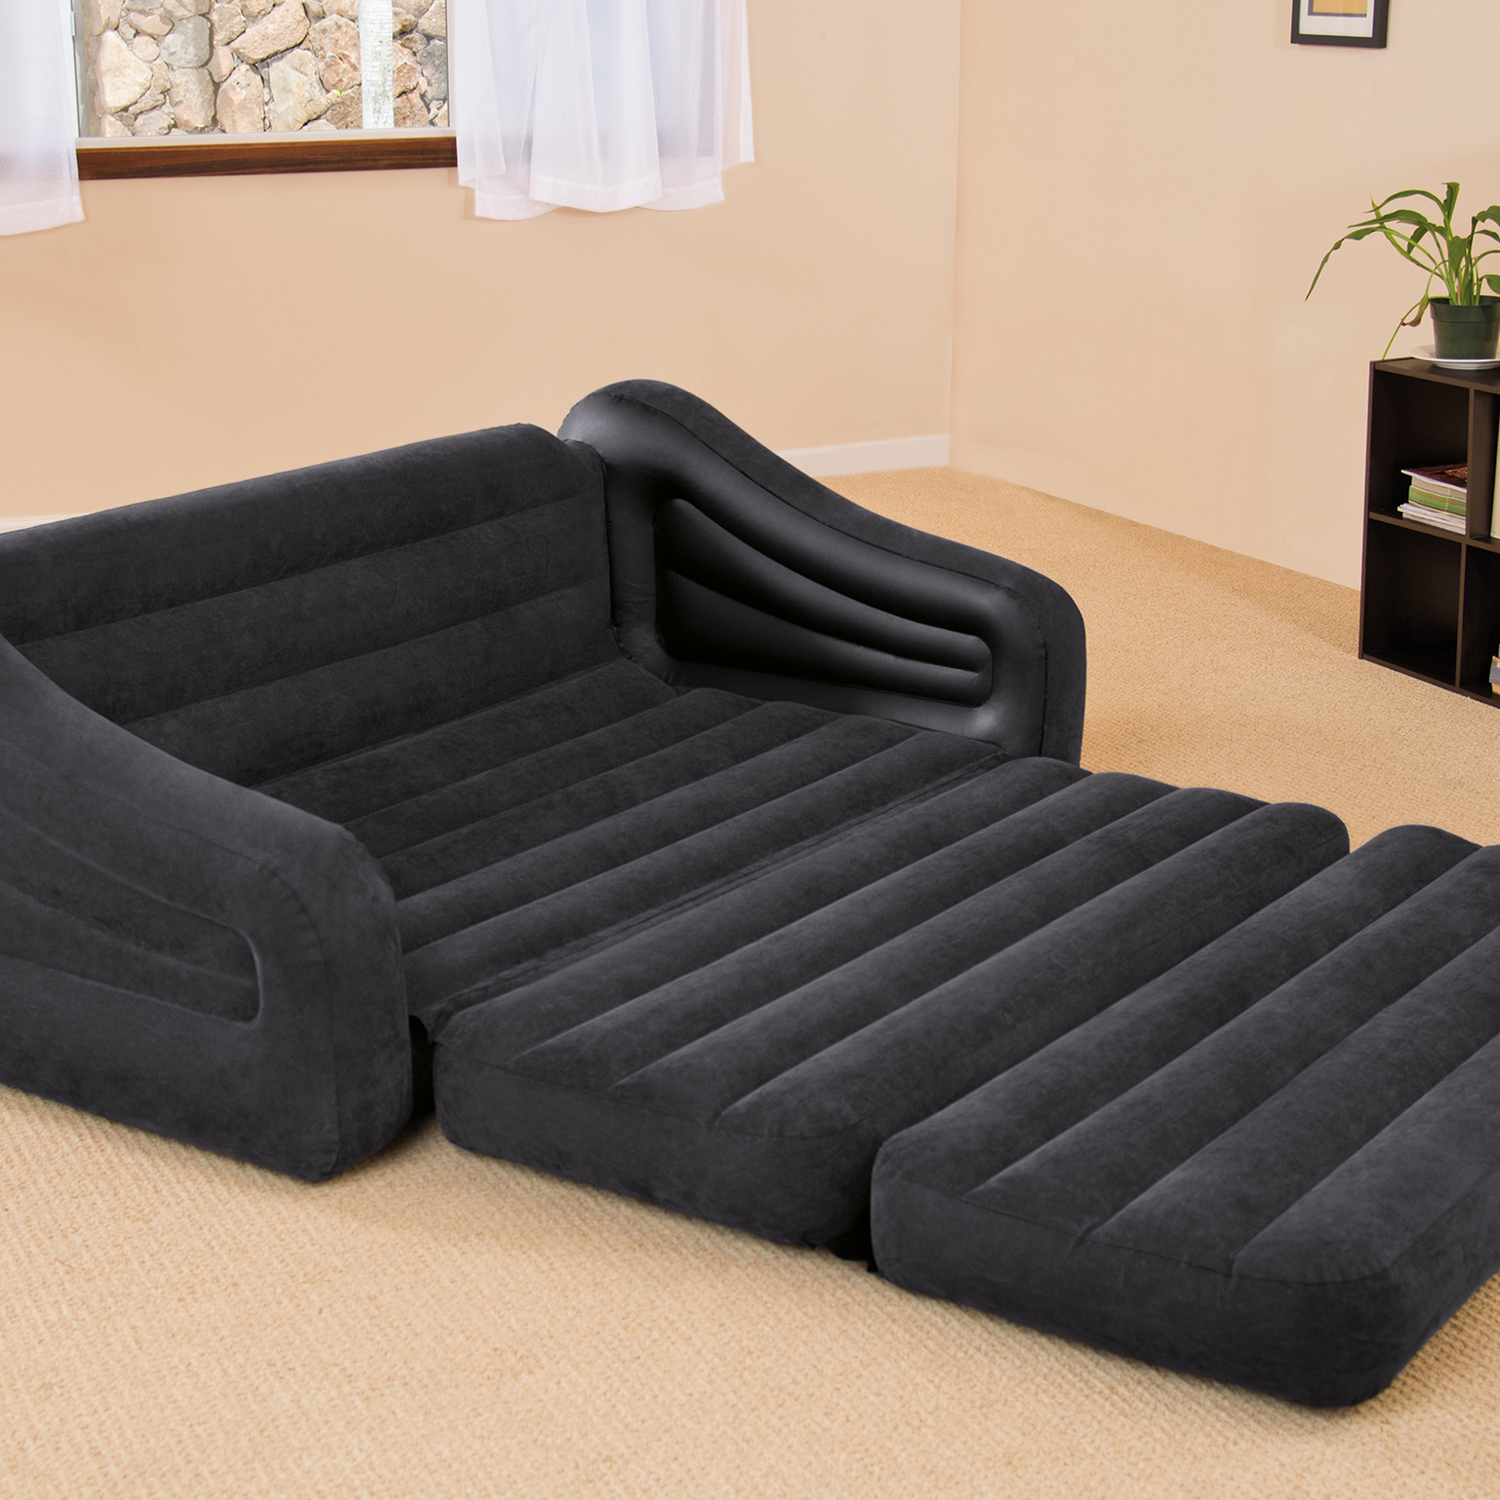 Intex Inflatable Queen Size Pull Out Futon Sofa Couch Bed Dark Gray 68566ep Ebay